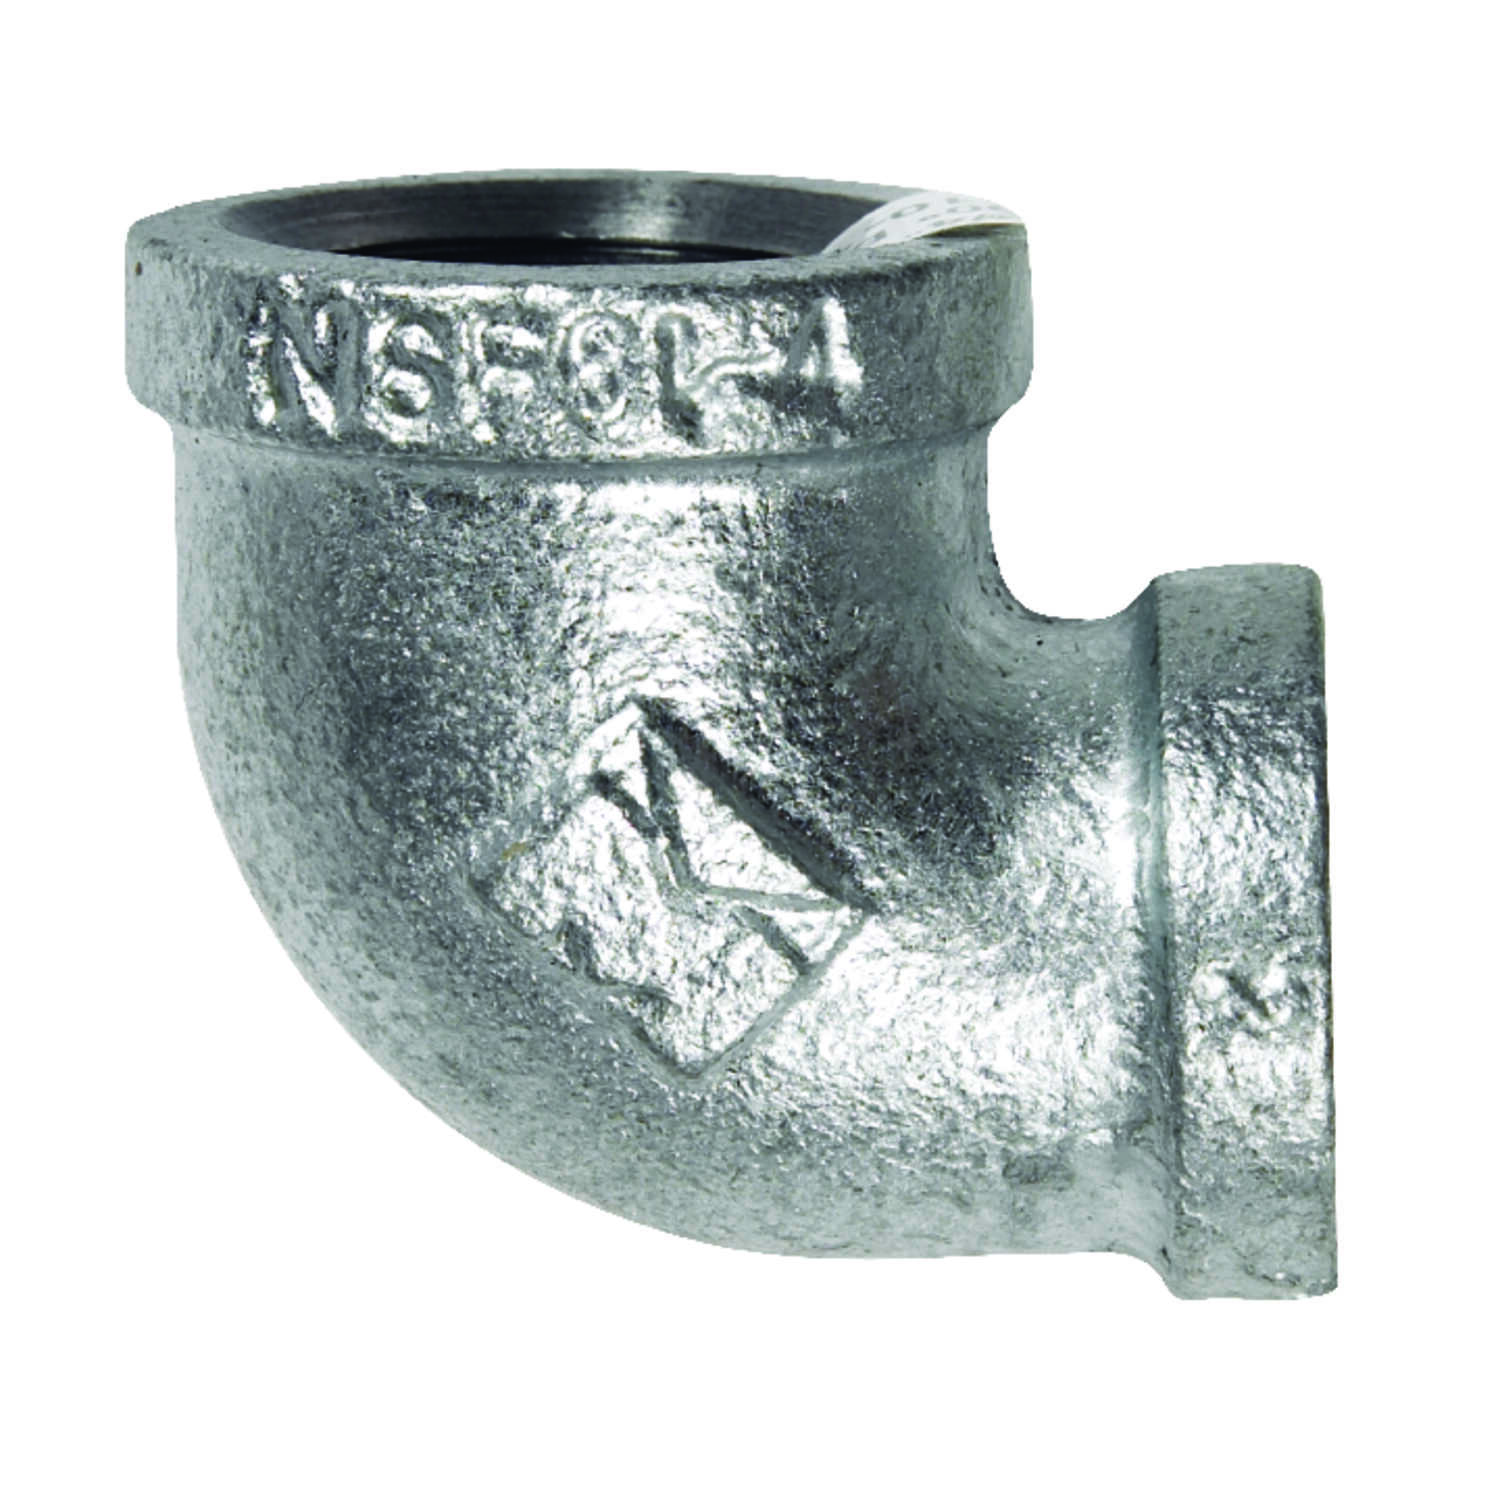 B & K  3/4 in. FPT   x 1/2 in. Dia. FPT  Galvanized  Malleable Iron  Reducing Elbow